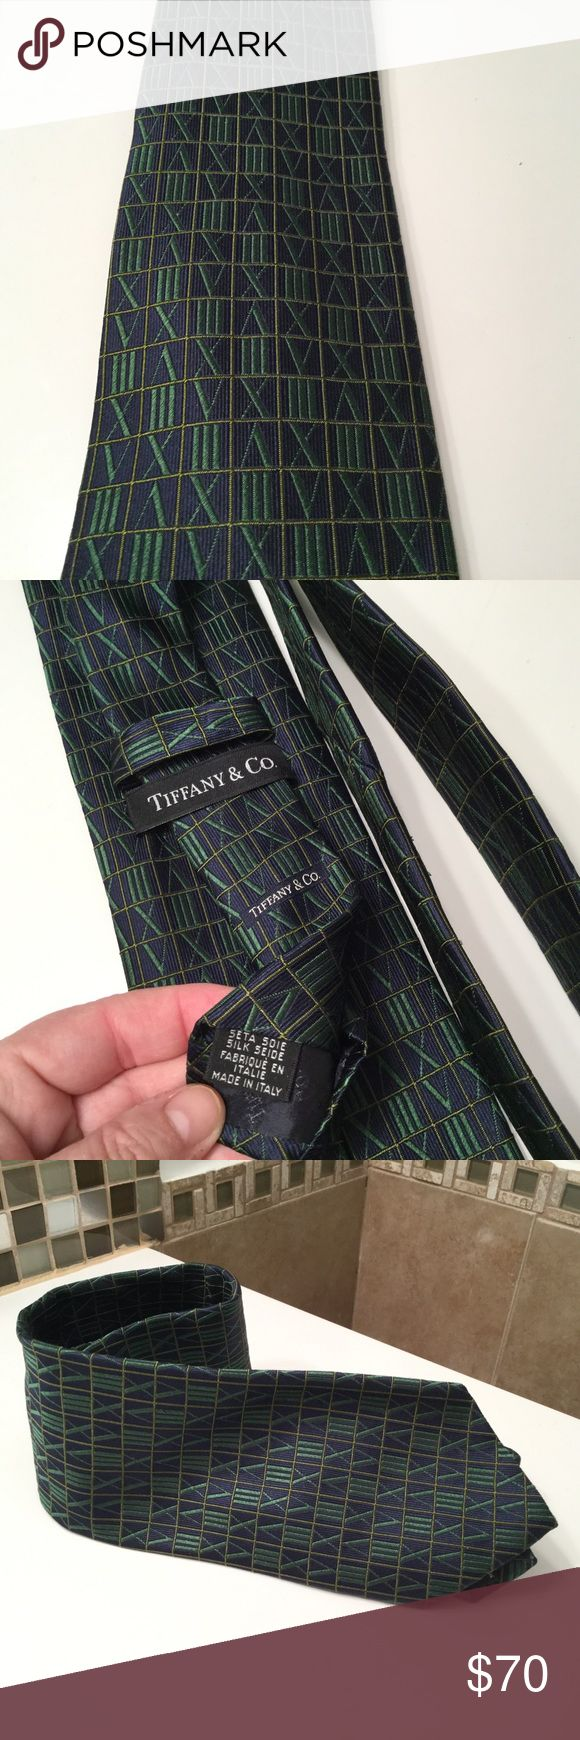 TIFFANY & CO Men's Tie Silk Italy Blue Green Beautiful, authentic Tiffany & Co. men's 100% silk tie. Made in Italy. Blue and green. Looks like roman numerals, but isn't all roman numerals. Tiffany & Co. Accessories Ties